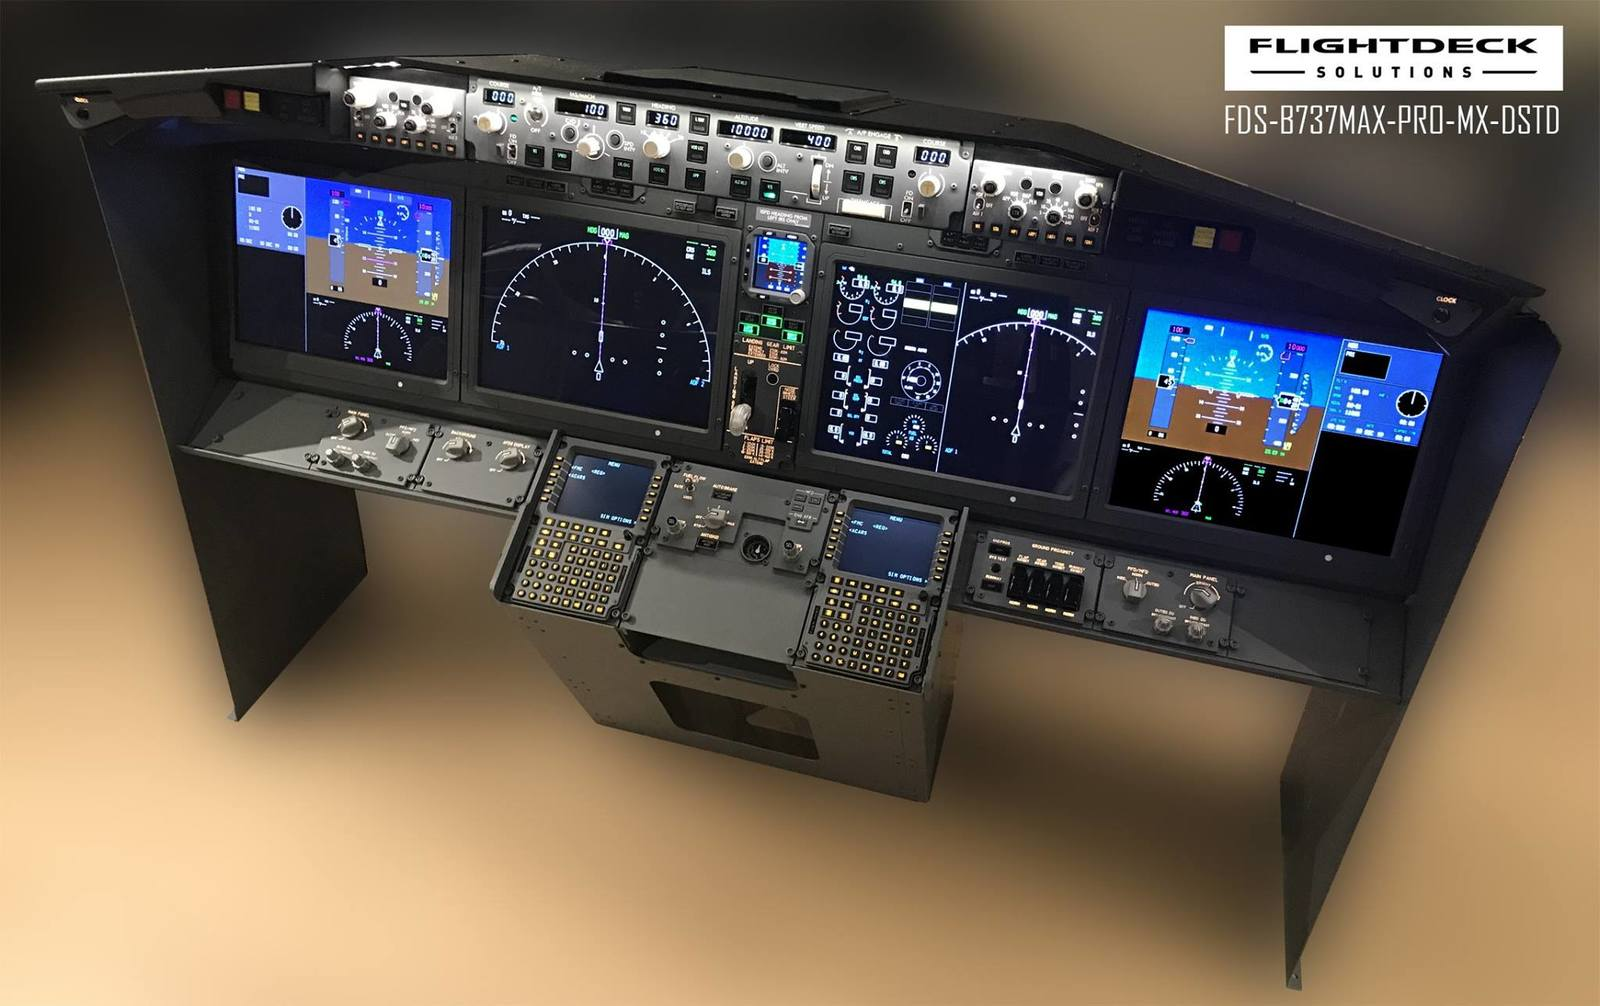 737max Flightdeck Solutions